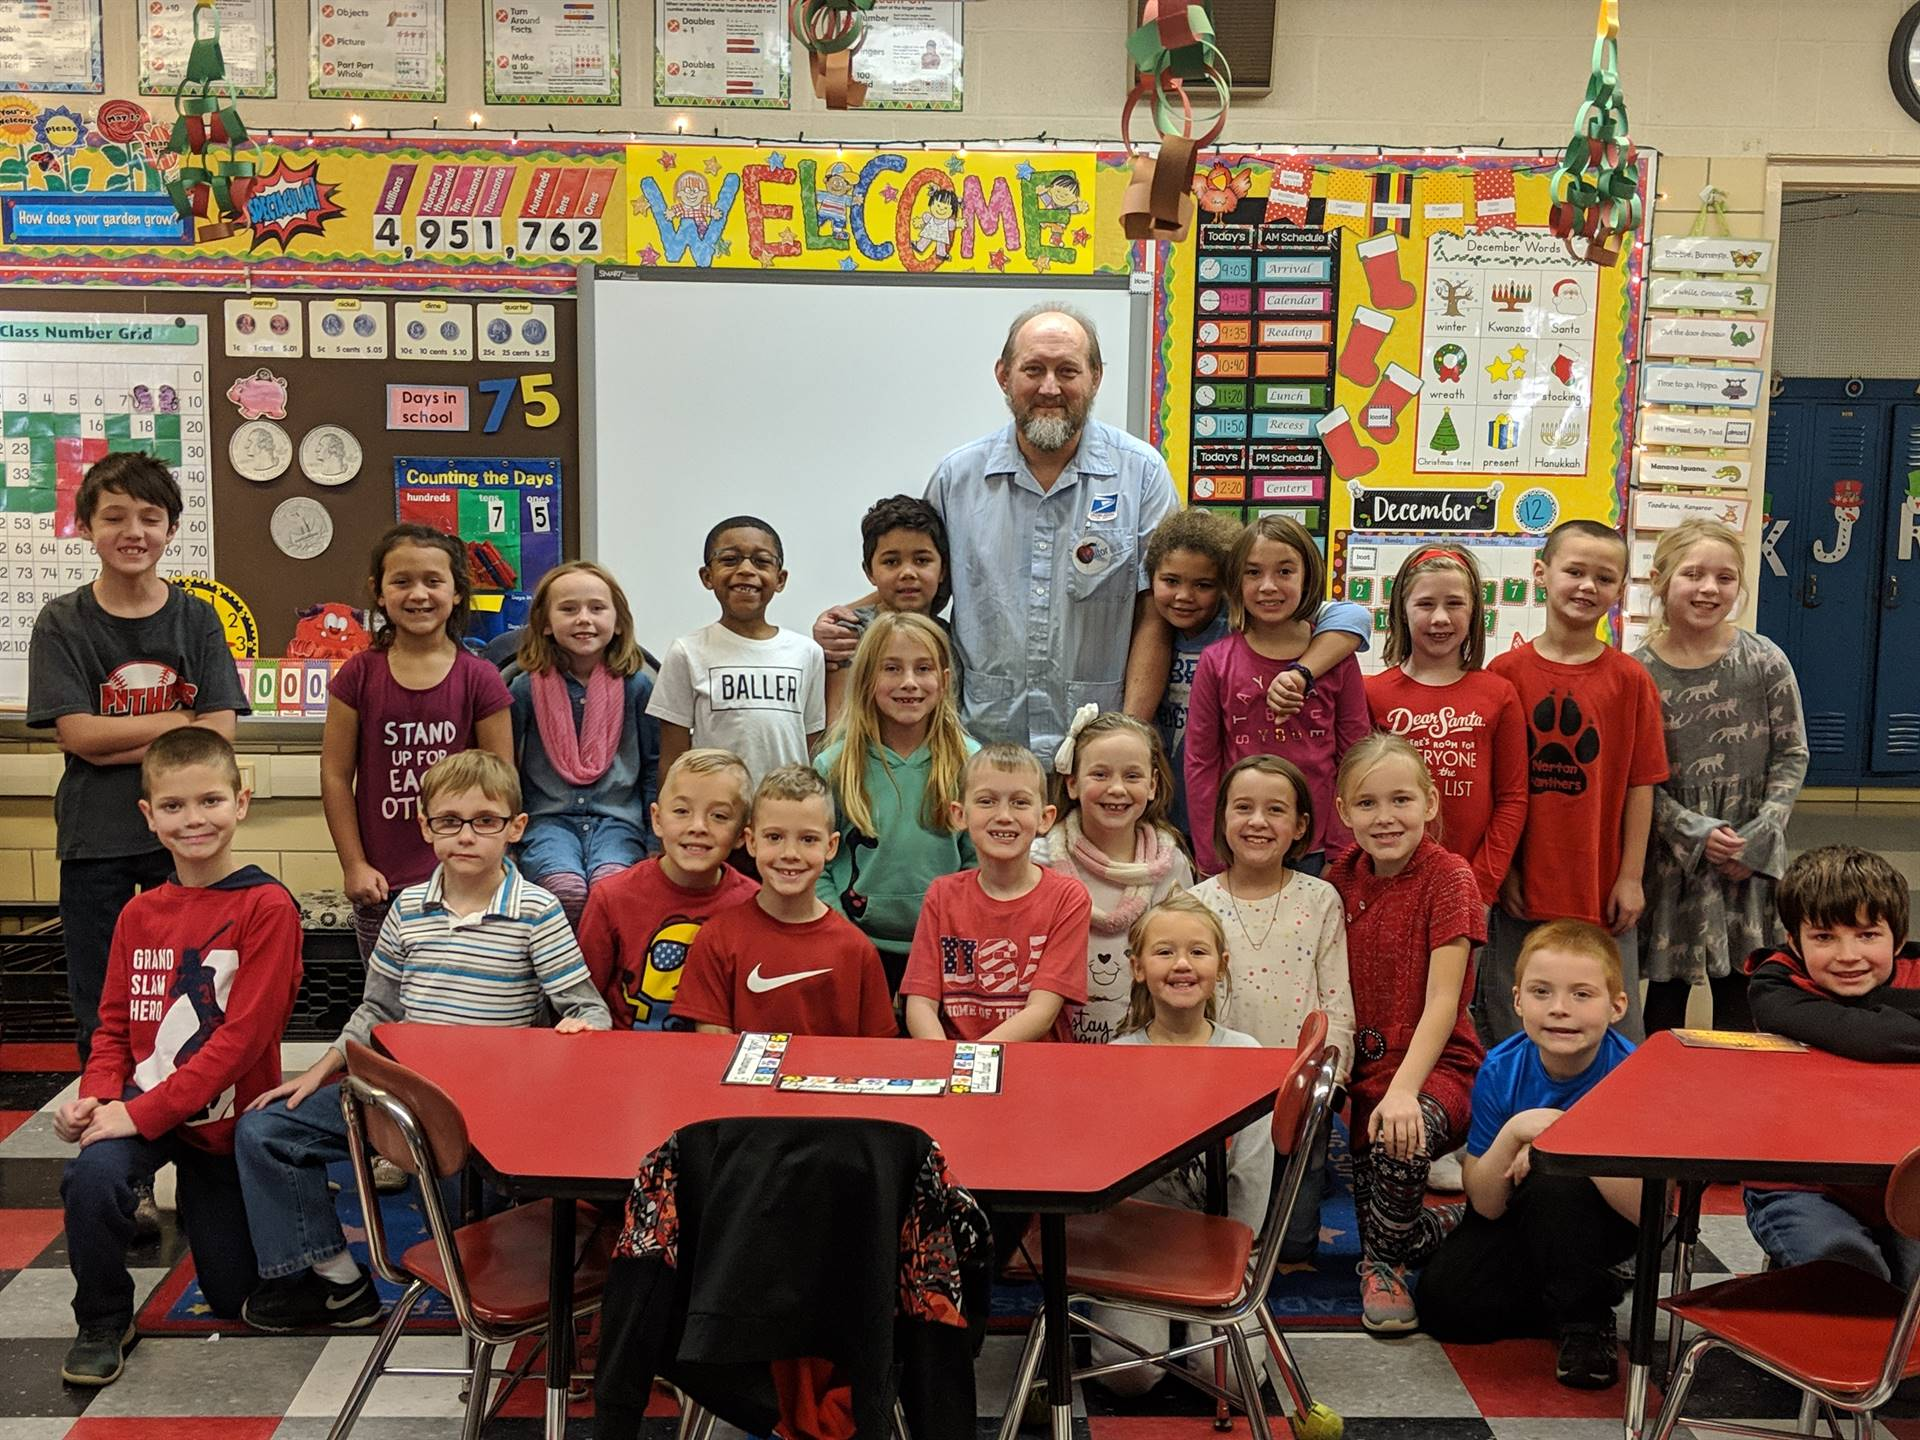 Mrs. Camilletti's class visited with Mr. Kreiger -a Norton mail carrier with 32 years of service.